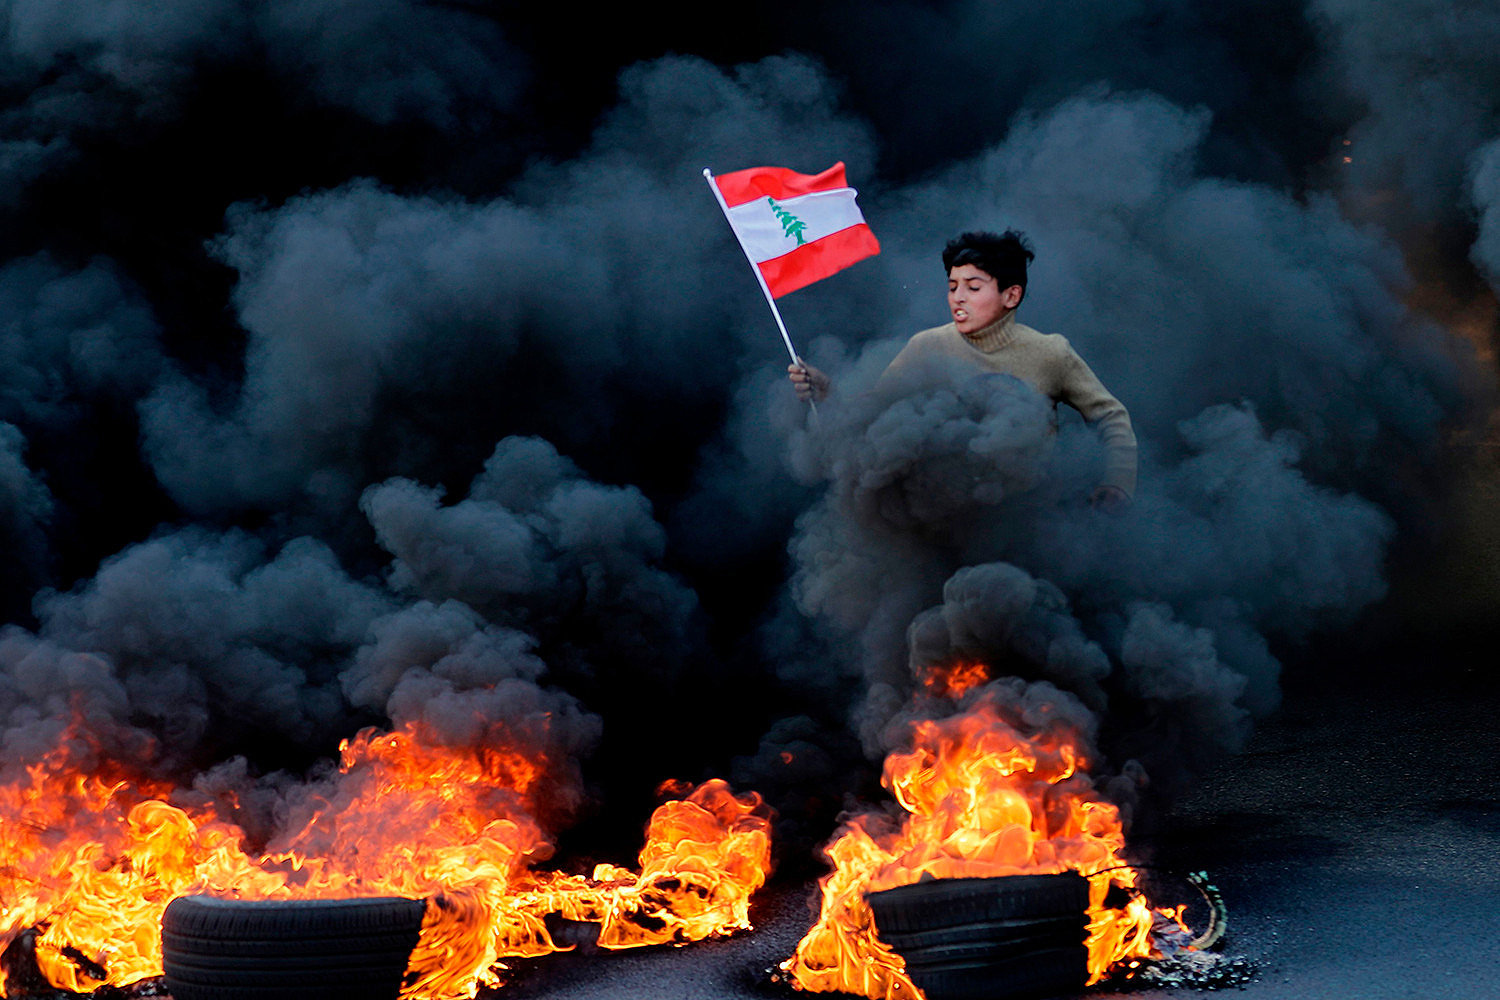 A Lebanese youth runs with a national flag as smoke billows from burning tires during a demonstration in Jal el-Dib area on the northern outskirts of Beirut on Jan. 14. JOSEPH EID/AFP via Getty Images